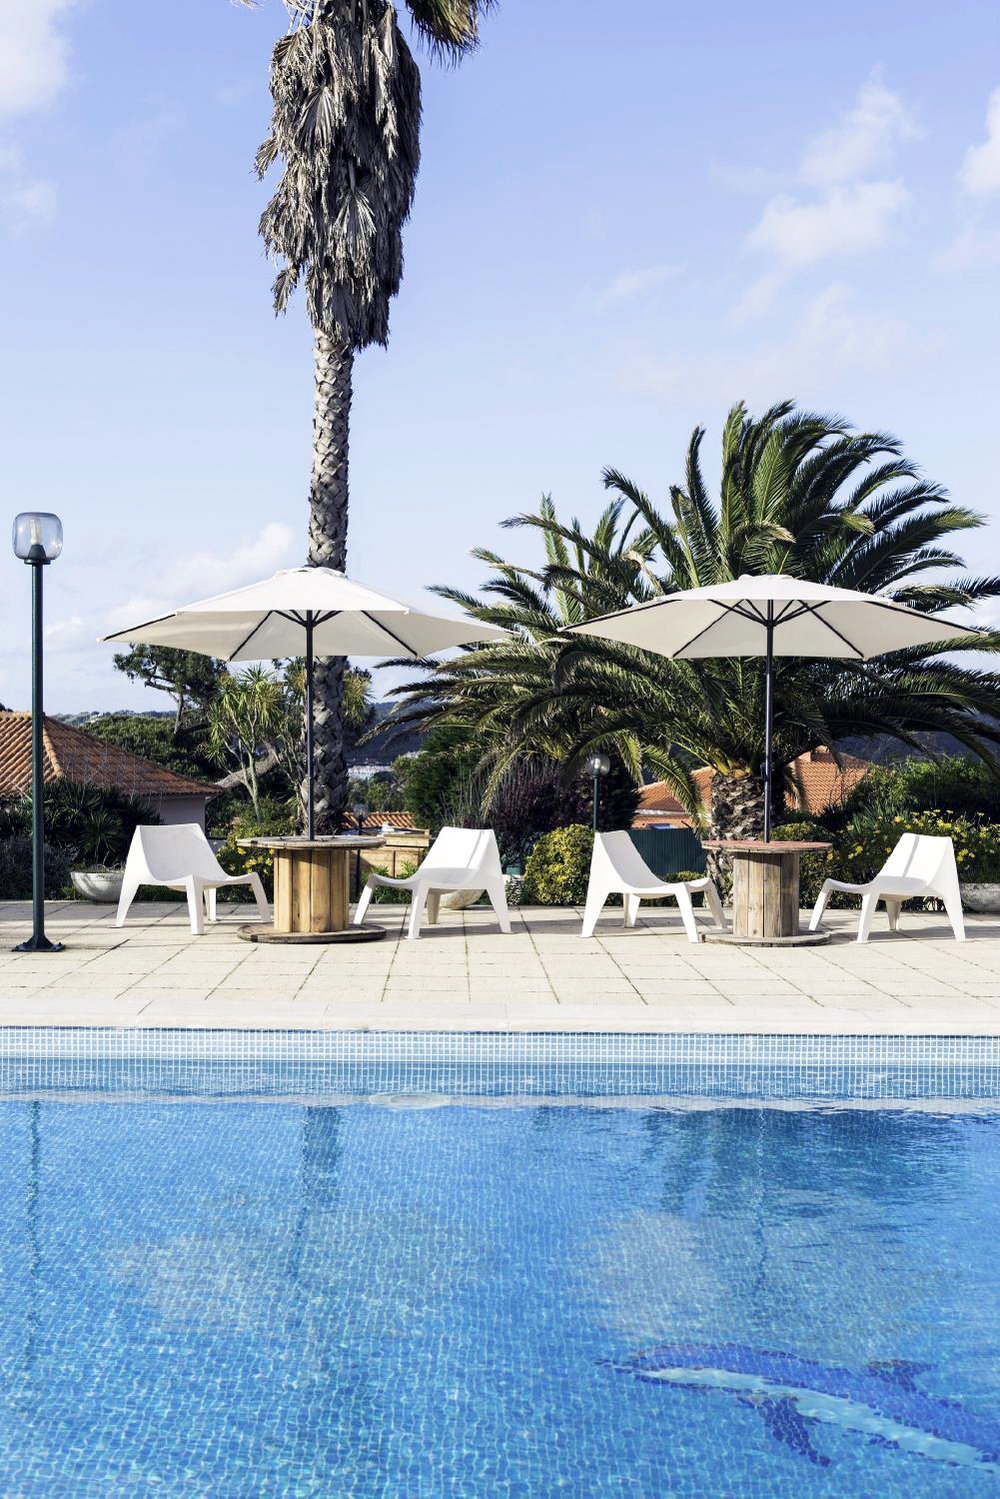 SINTRA: option 2 with free wi-fi, swimming pool, sauna and jacuzzi